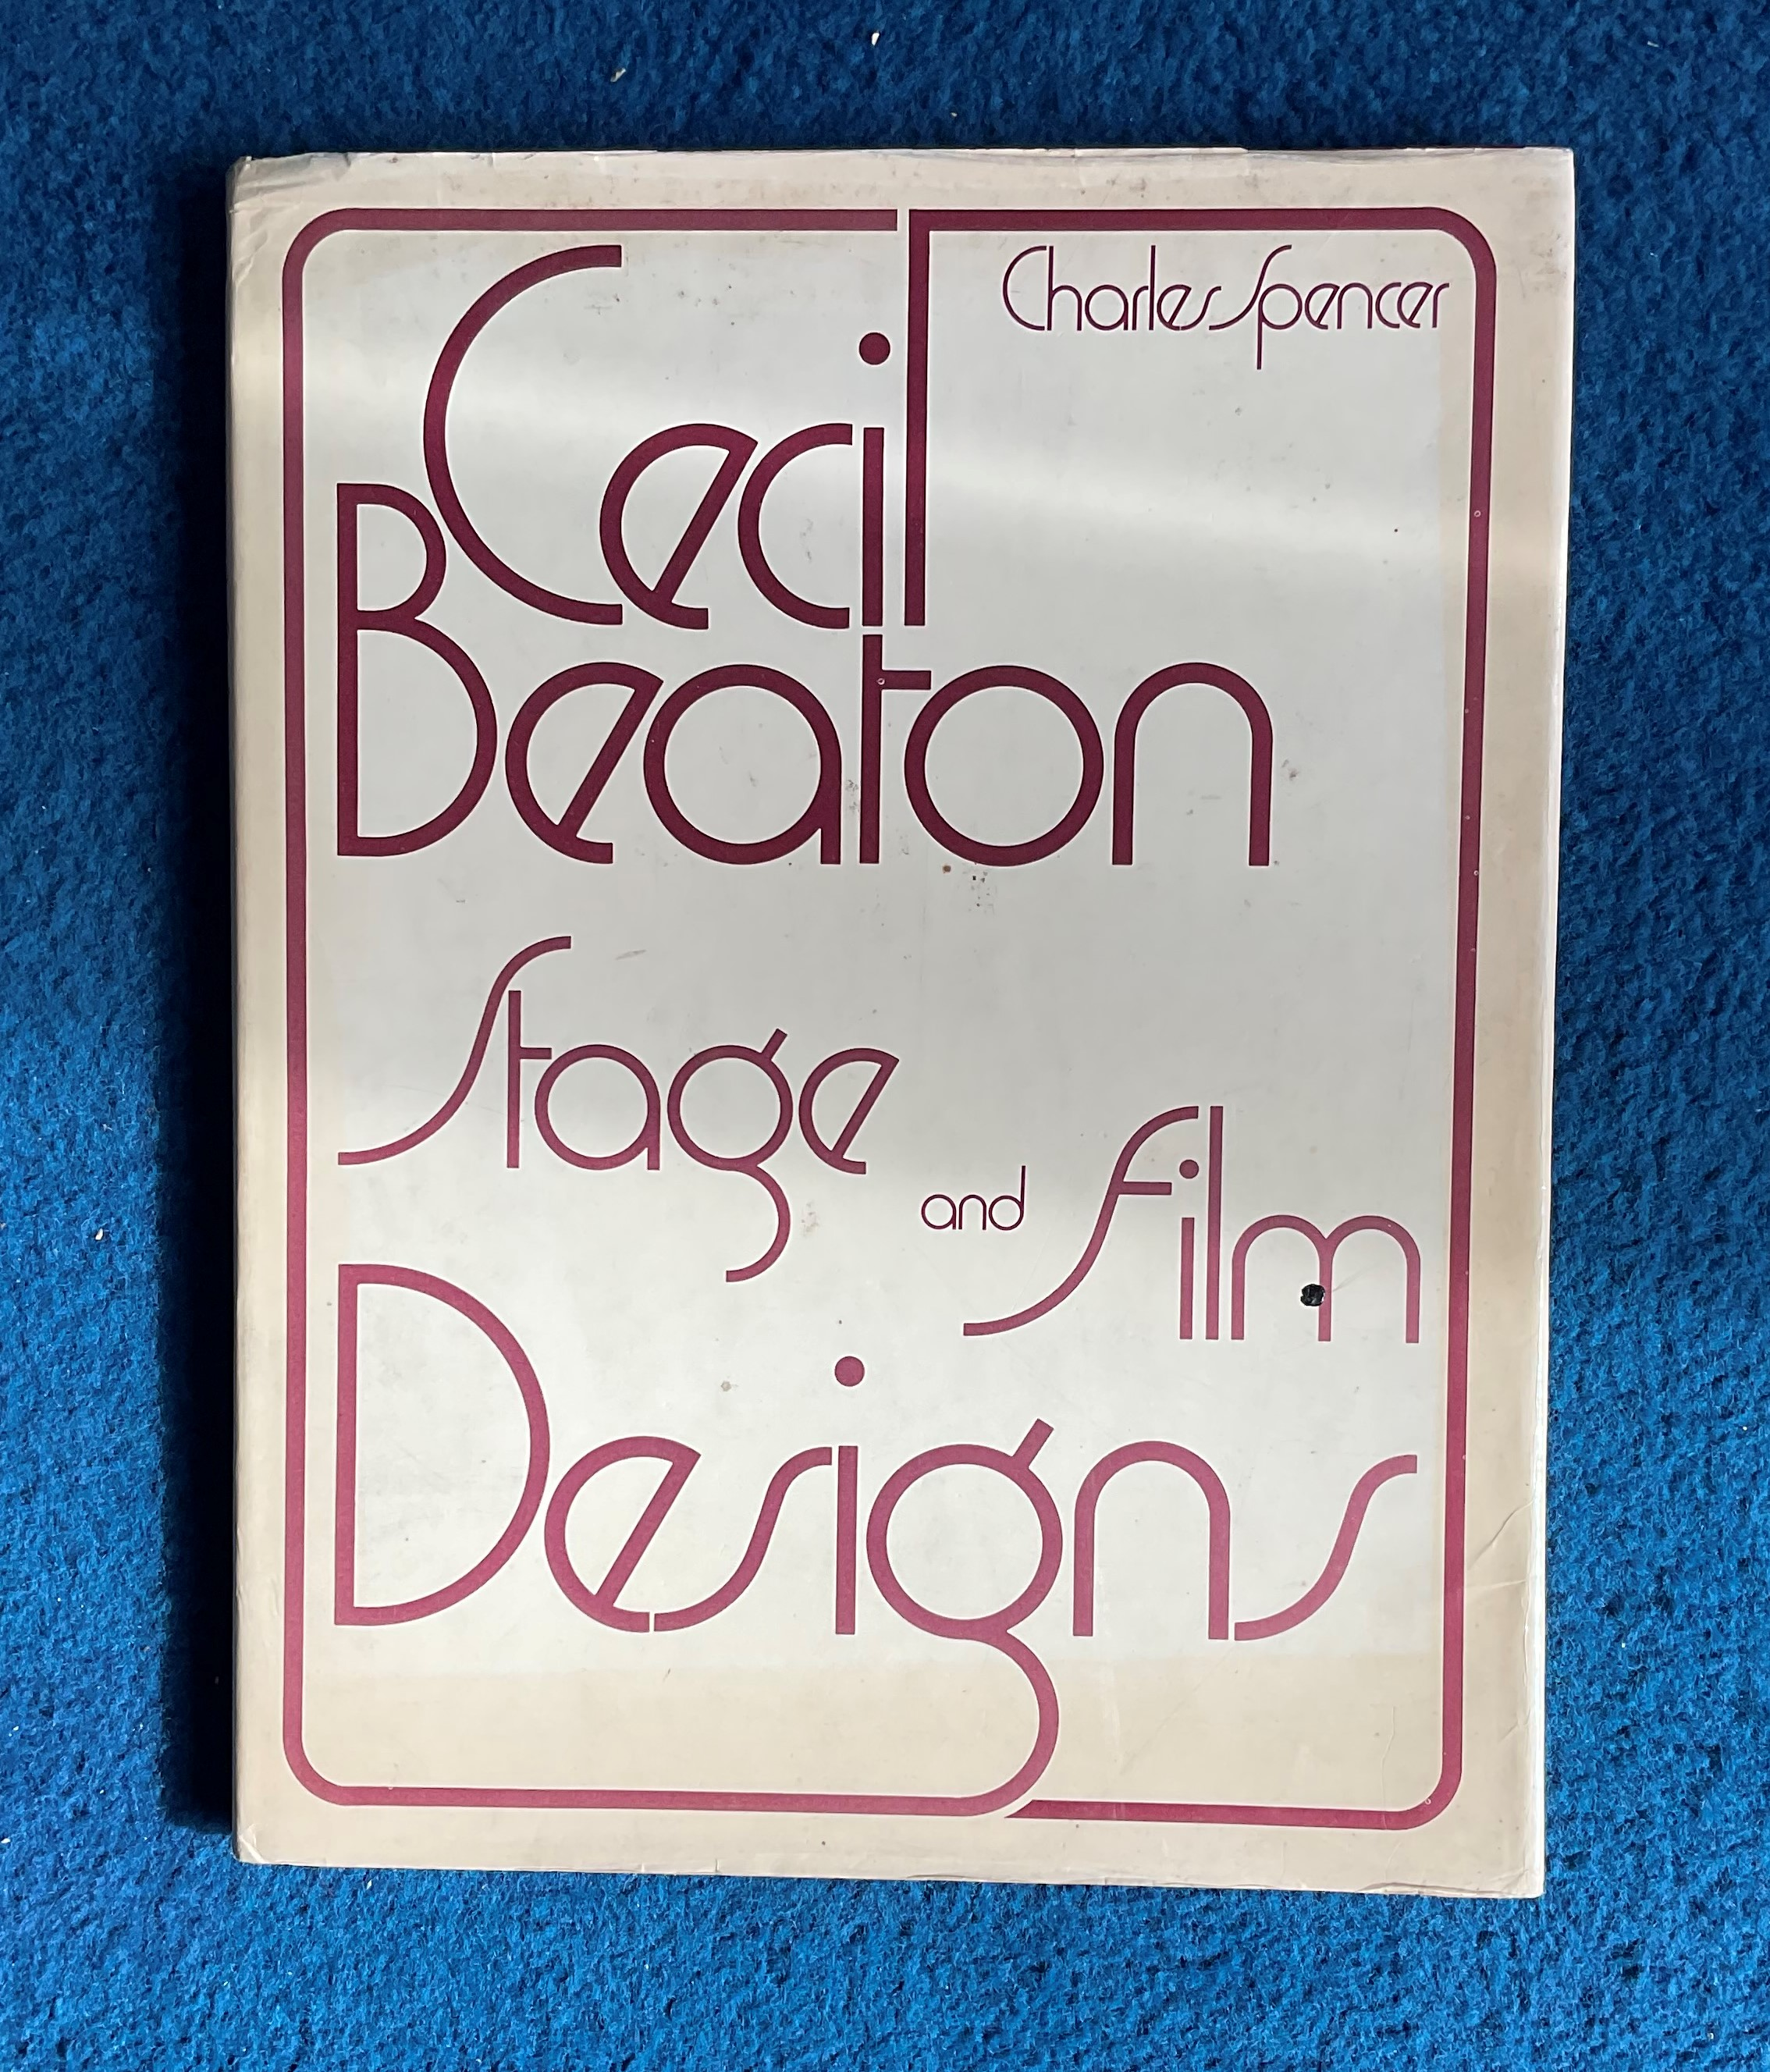 Hardback Book Cecil Beaton Stage and Film Designs by Charles Spencer 1975 First Edition published by